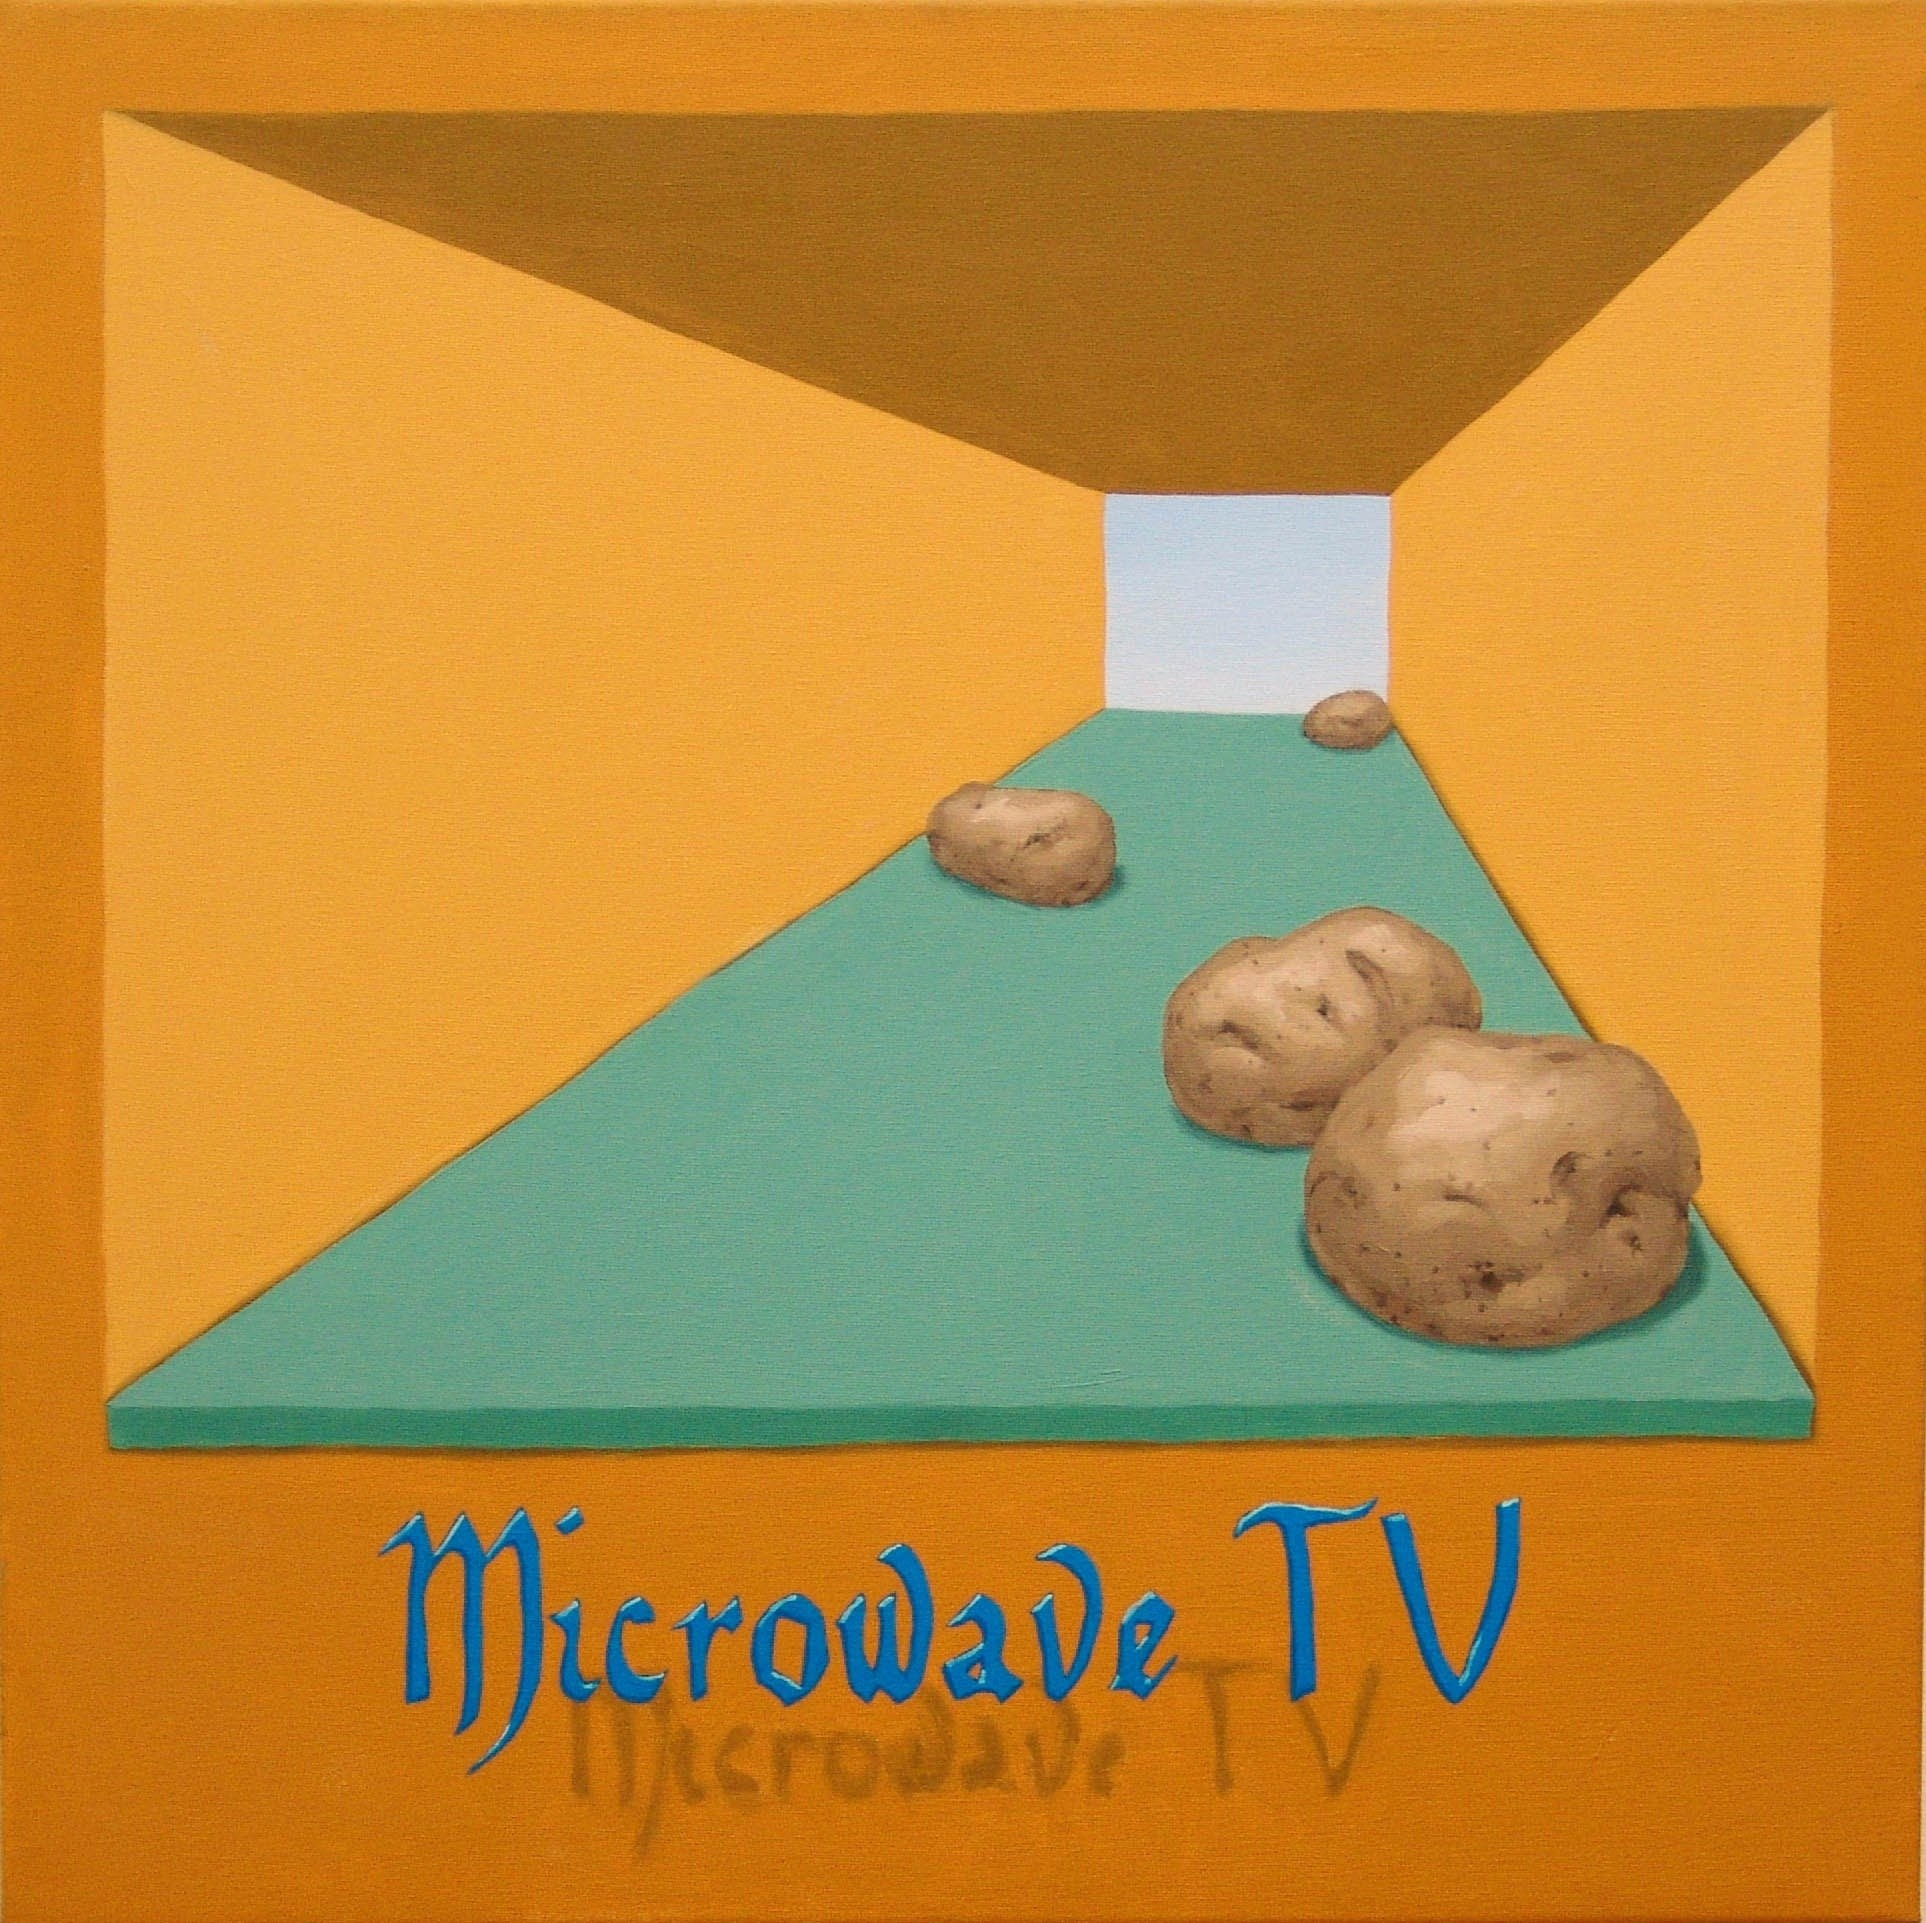 Microwave TV, original  Acrylic Painting by António Olaio